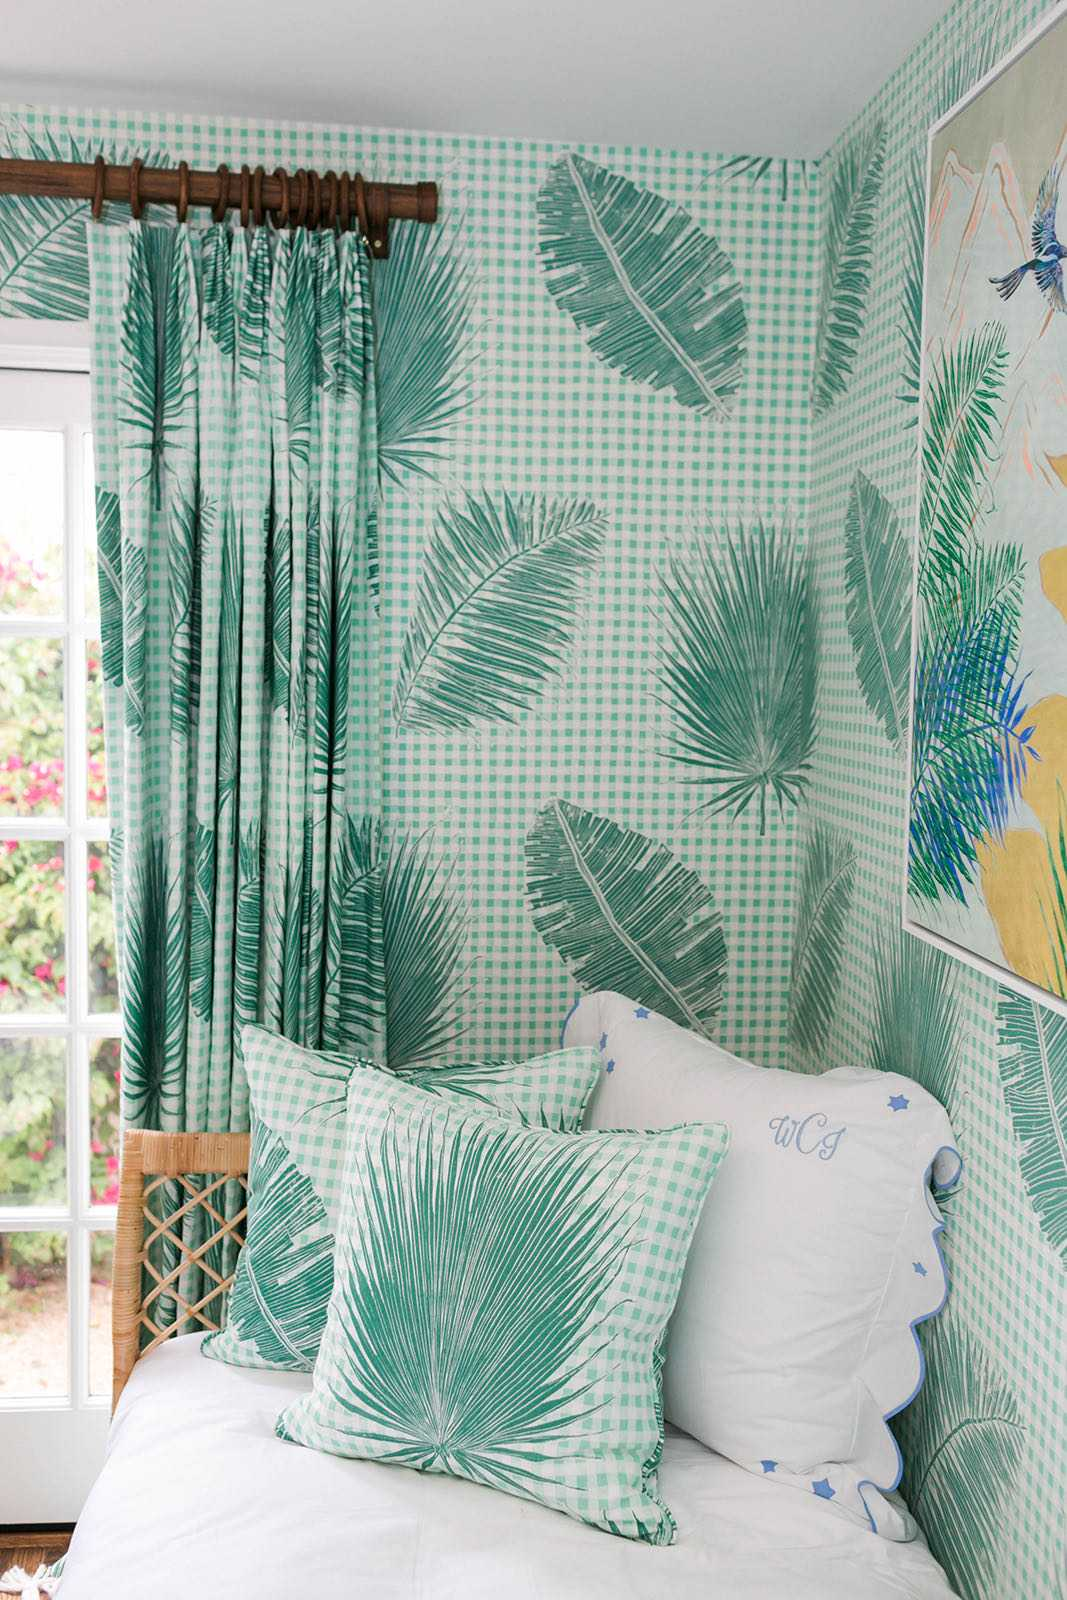 Gingham Jungle pillows in Jade, Interiors by Sharon Lee, Photo by Mekina Saylor